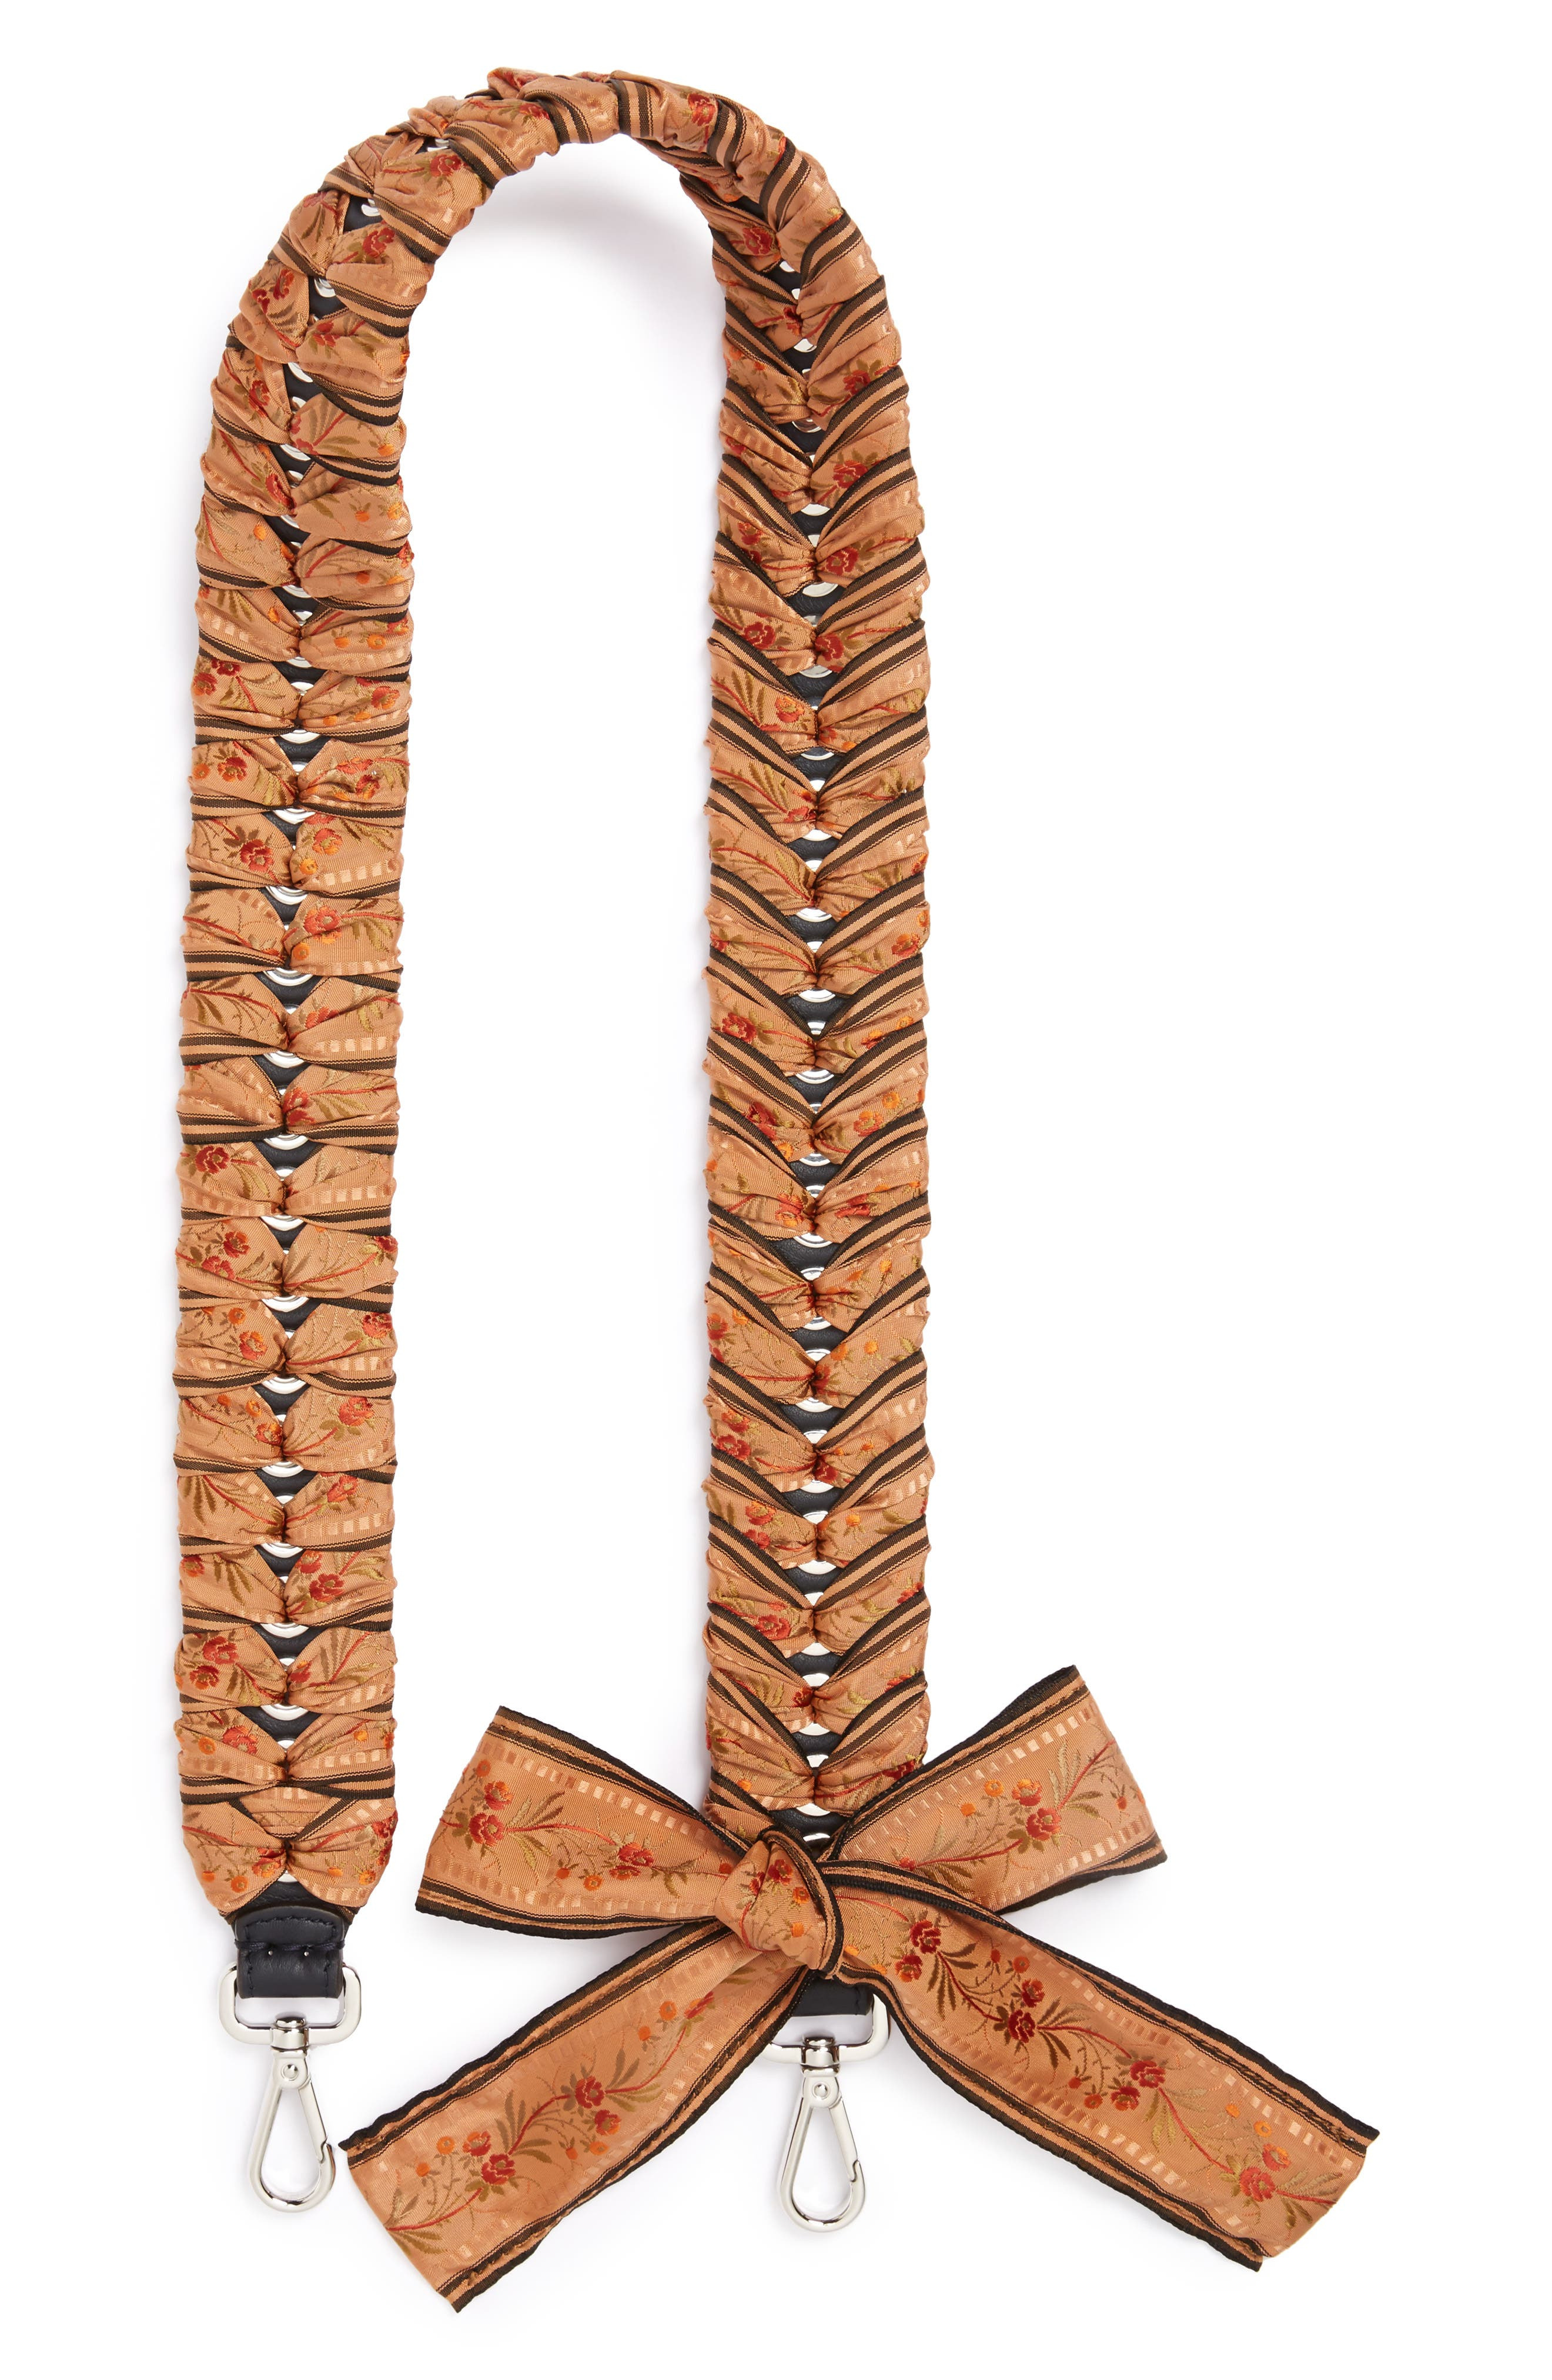 Main Image - Fendi Floral Ribbon Guitar Bag Strap